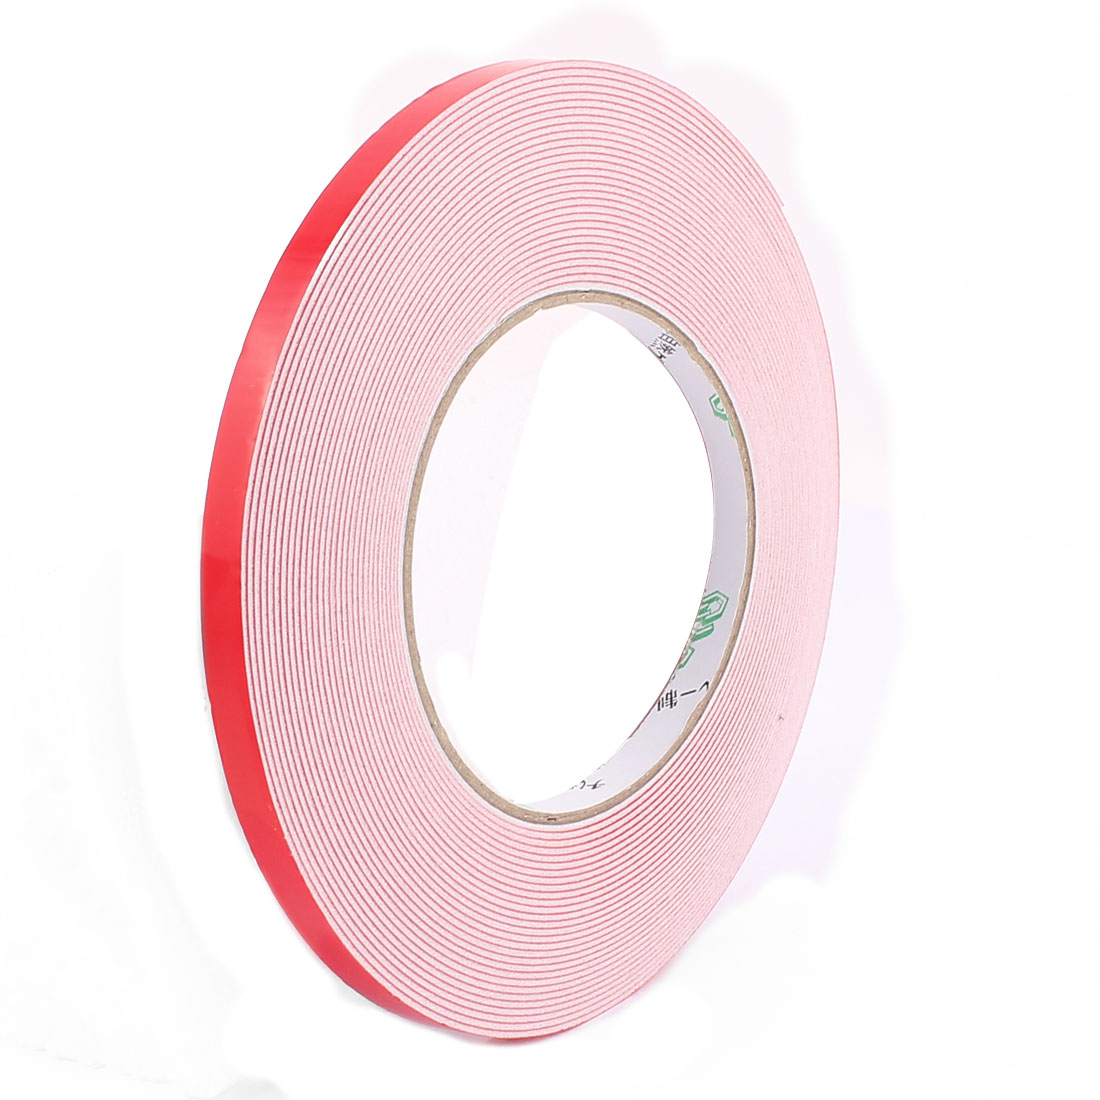 8MM Width 10M Length 1MM Thick White Dual Sided Waterproof Sponge Tape for Car